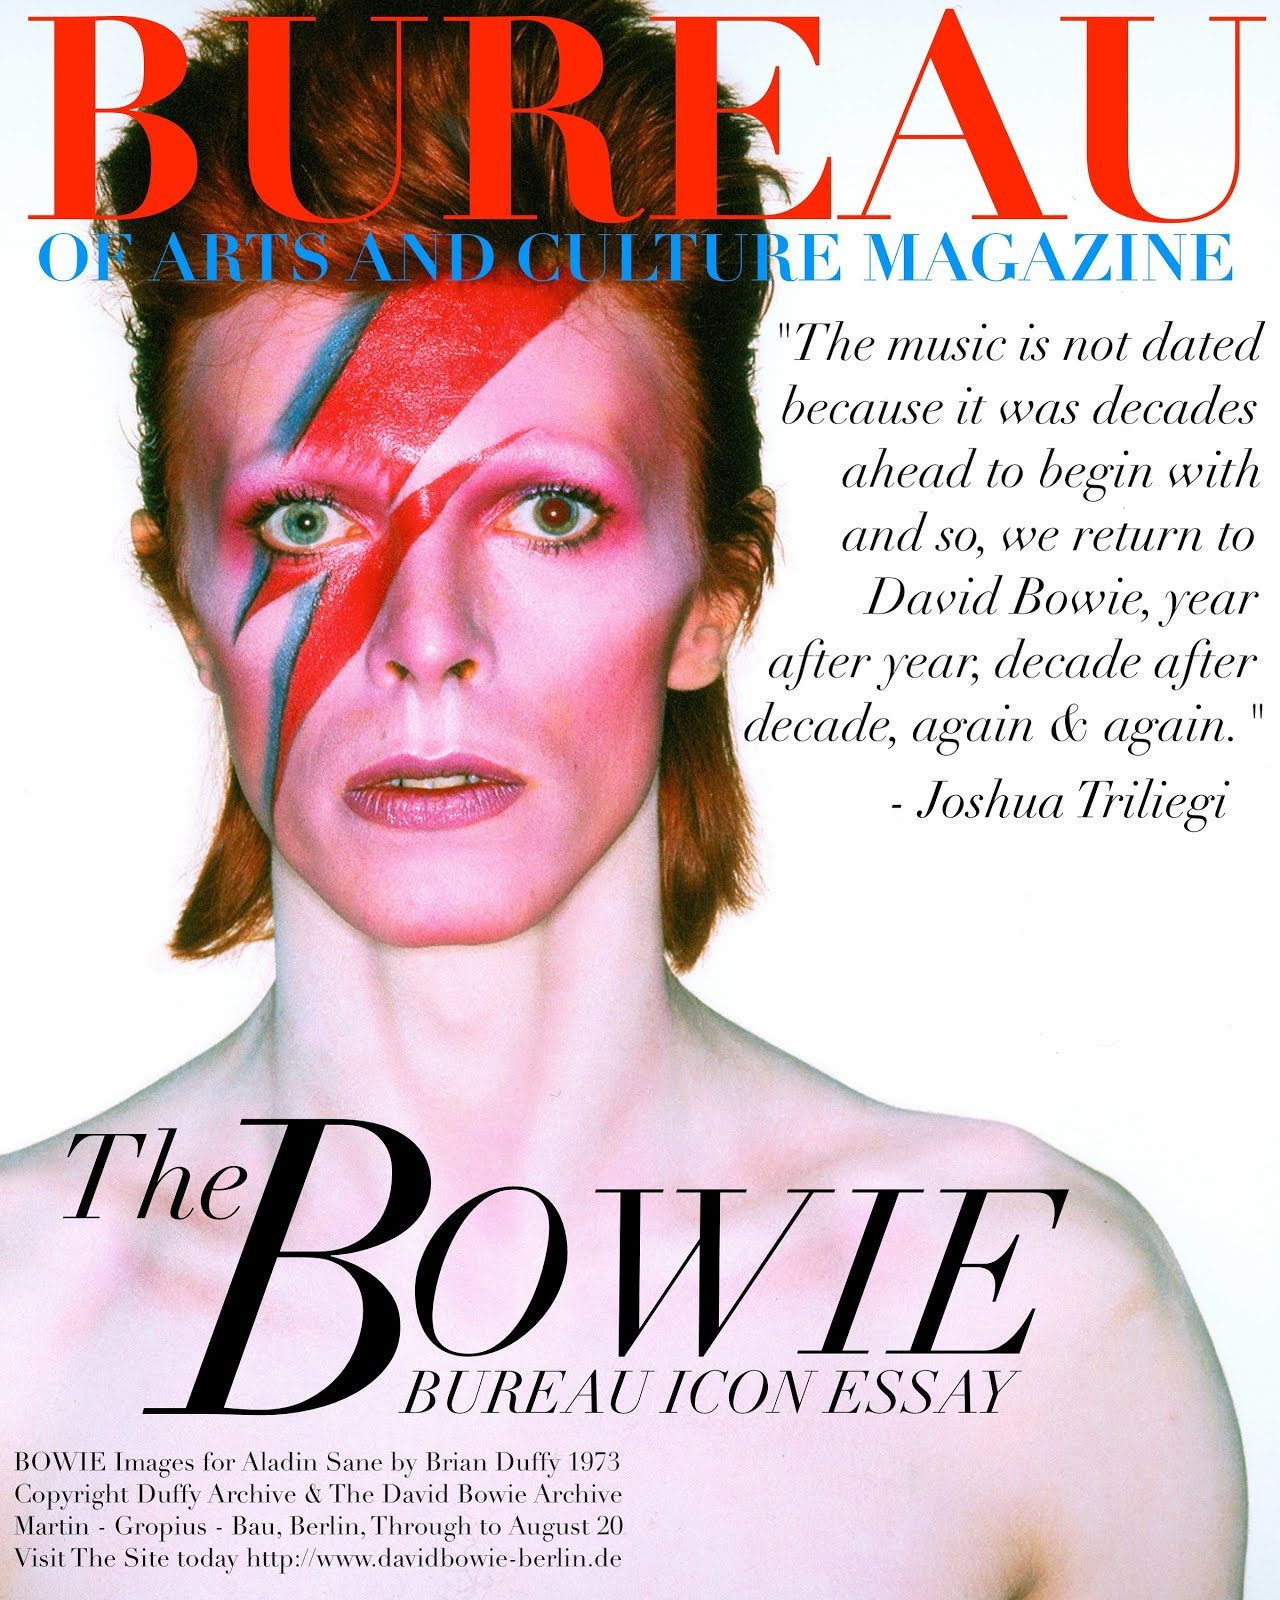 DAVID BOWIE: ICON Essay